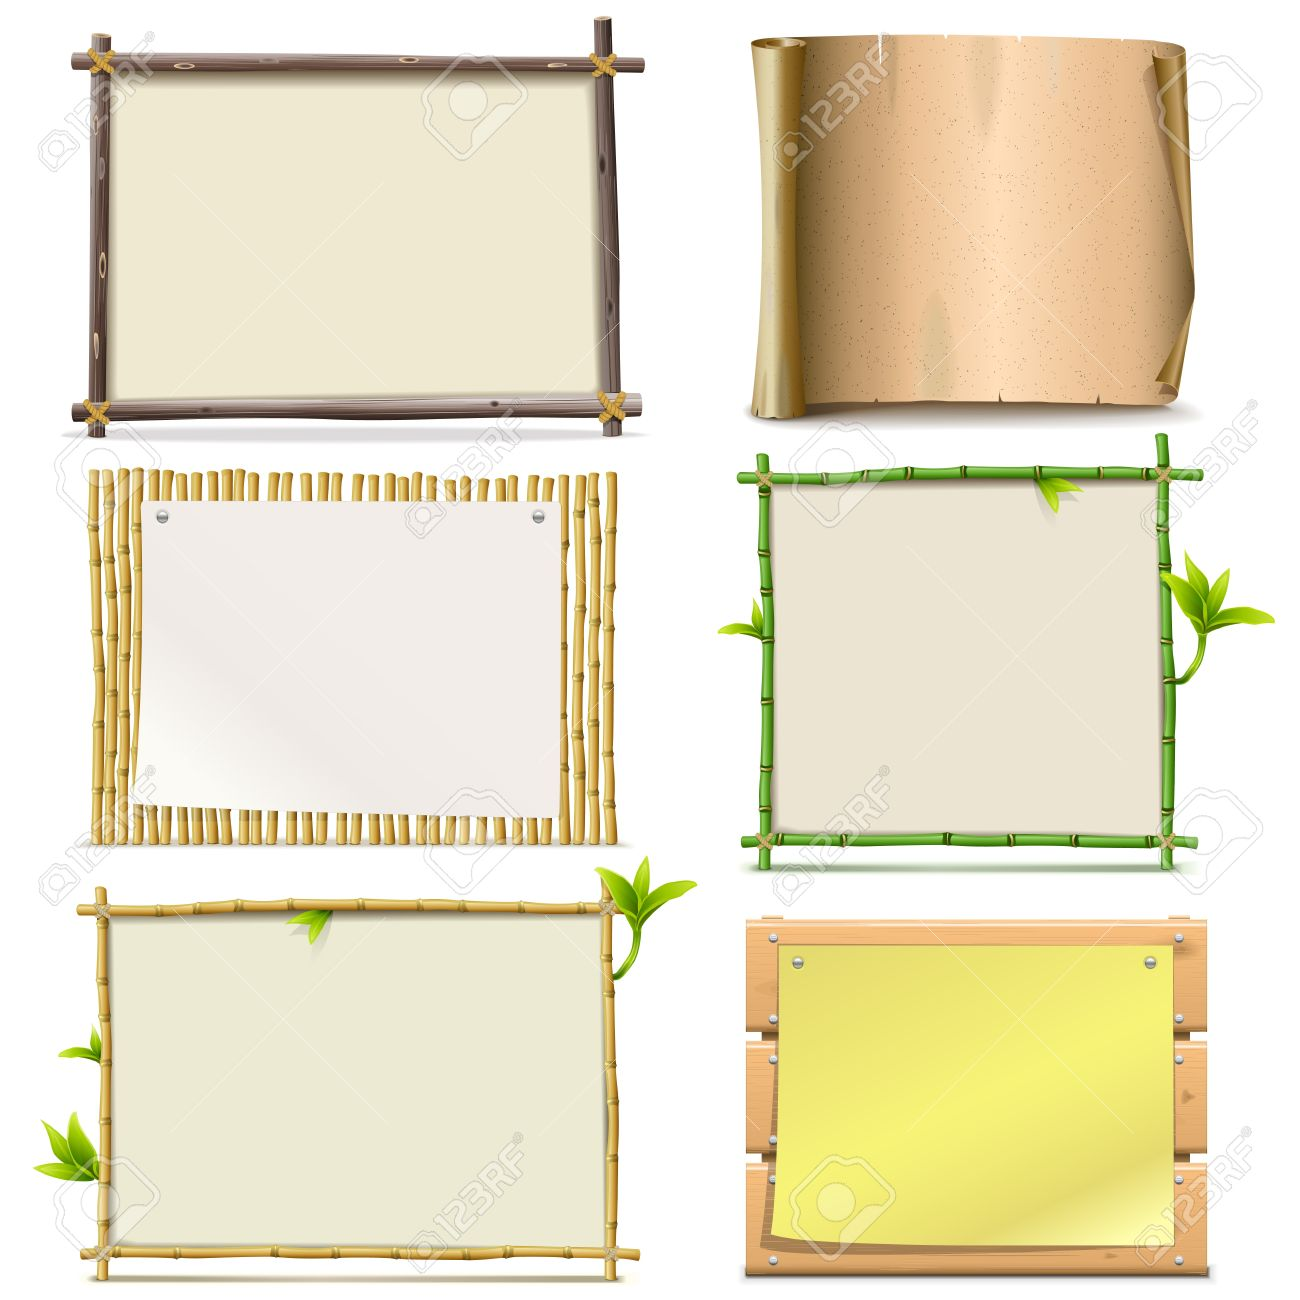 Vector Boards isolated on white background - 42545074